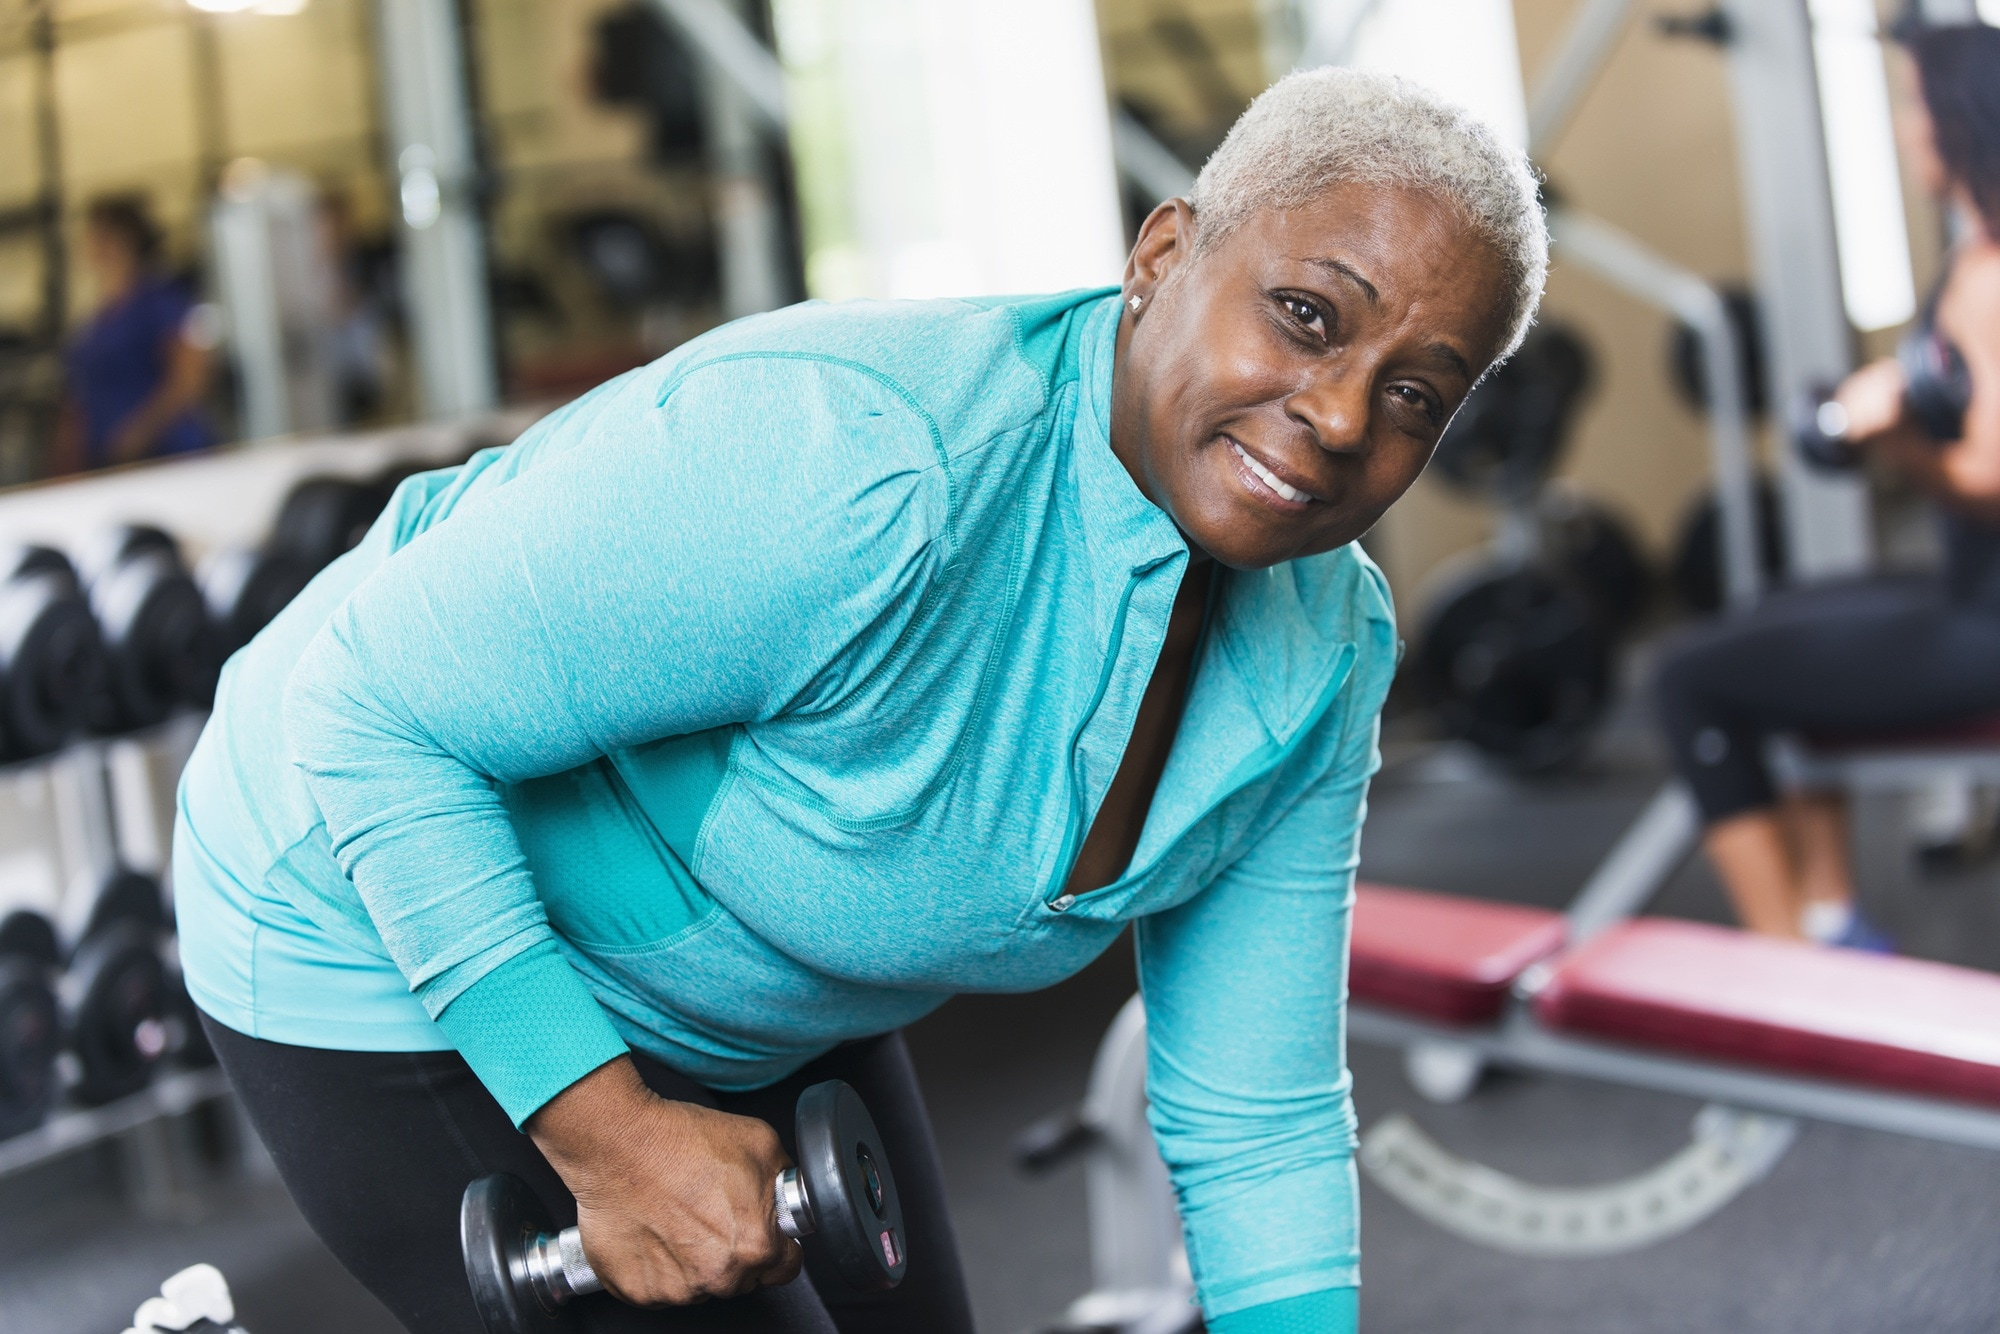 Short Haircuts for Women Over 50: 9 Pretty and Practical Looks